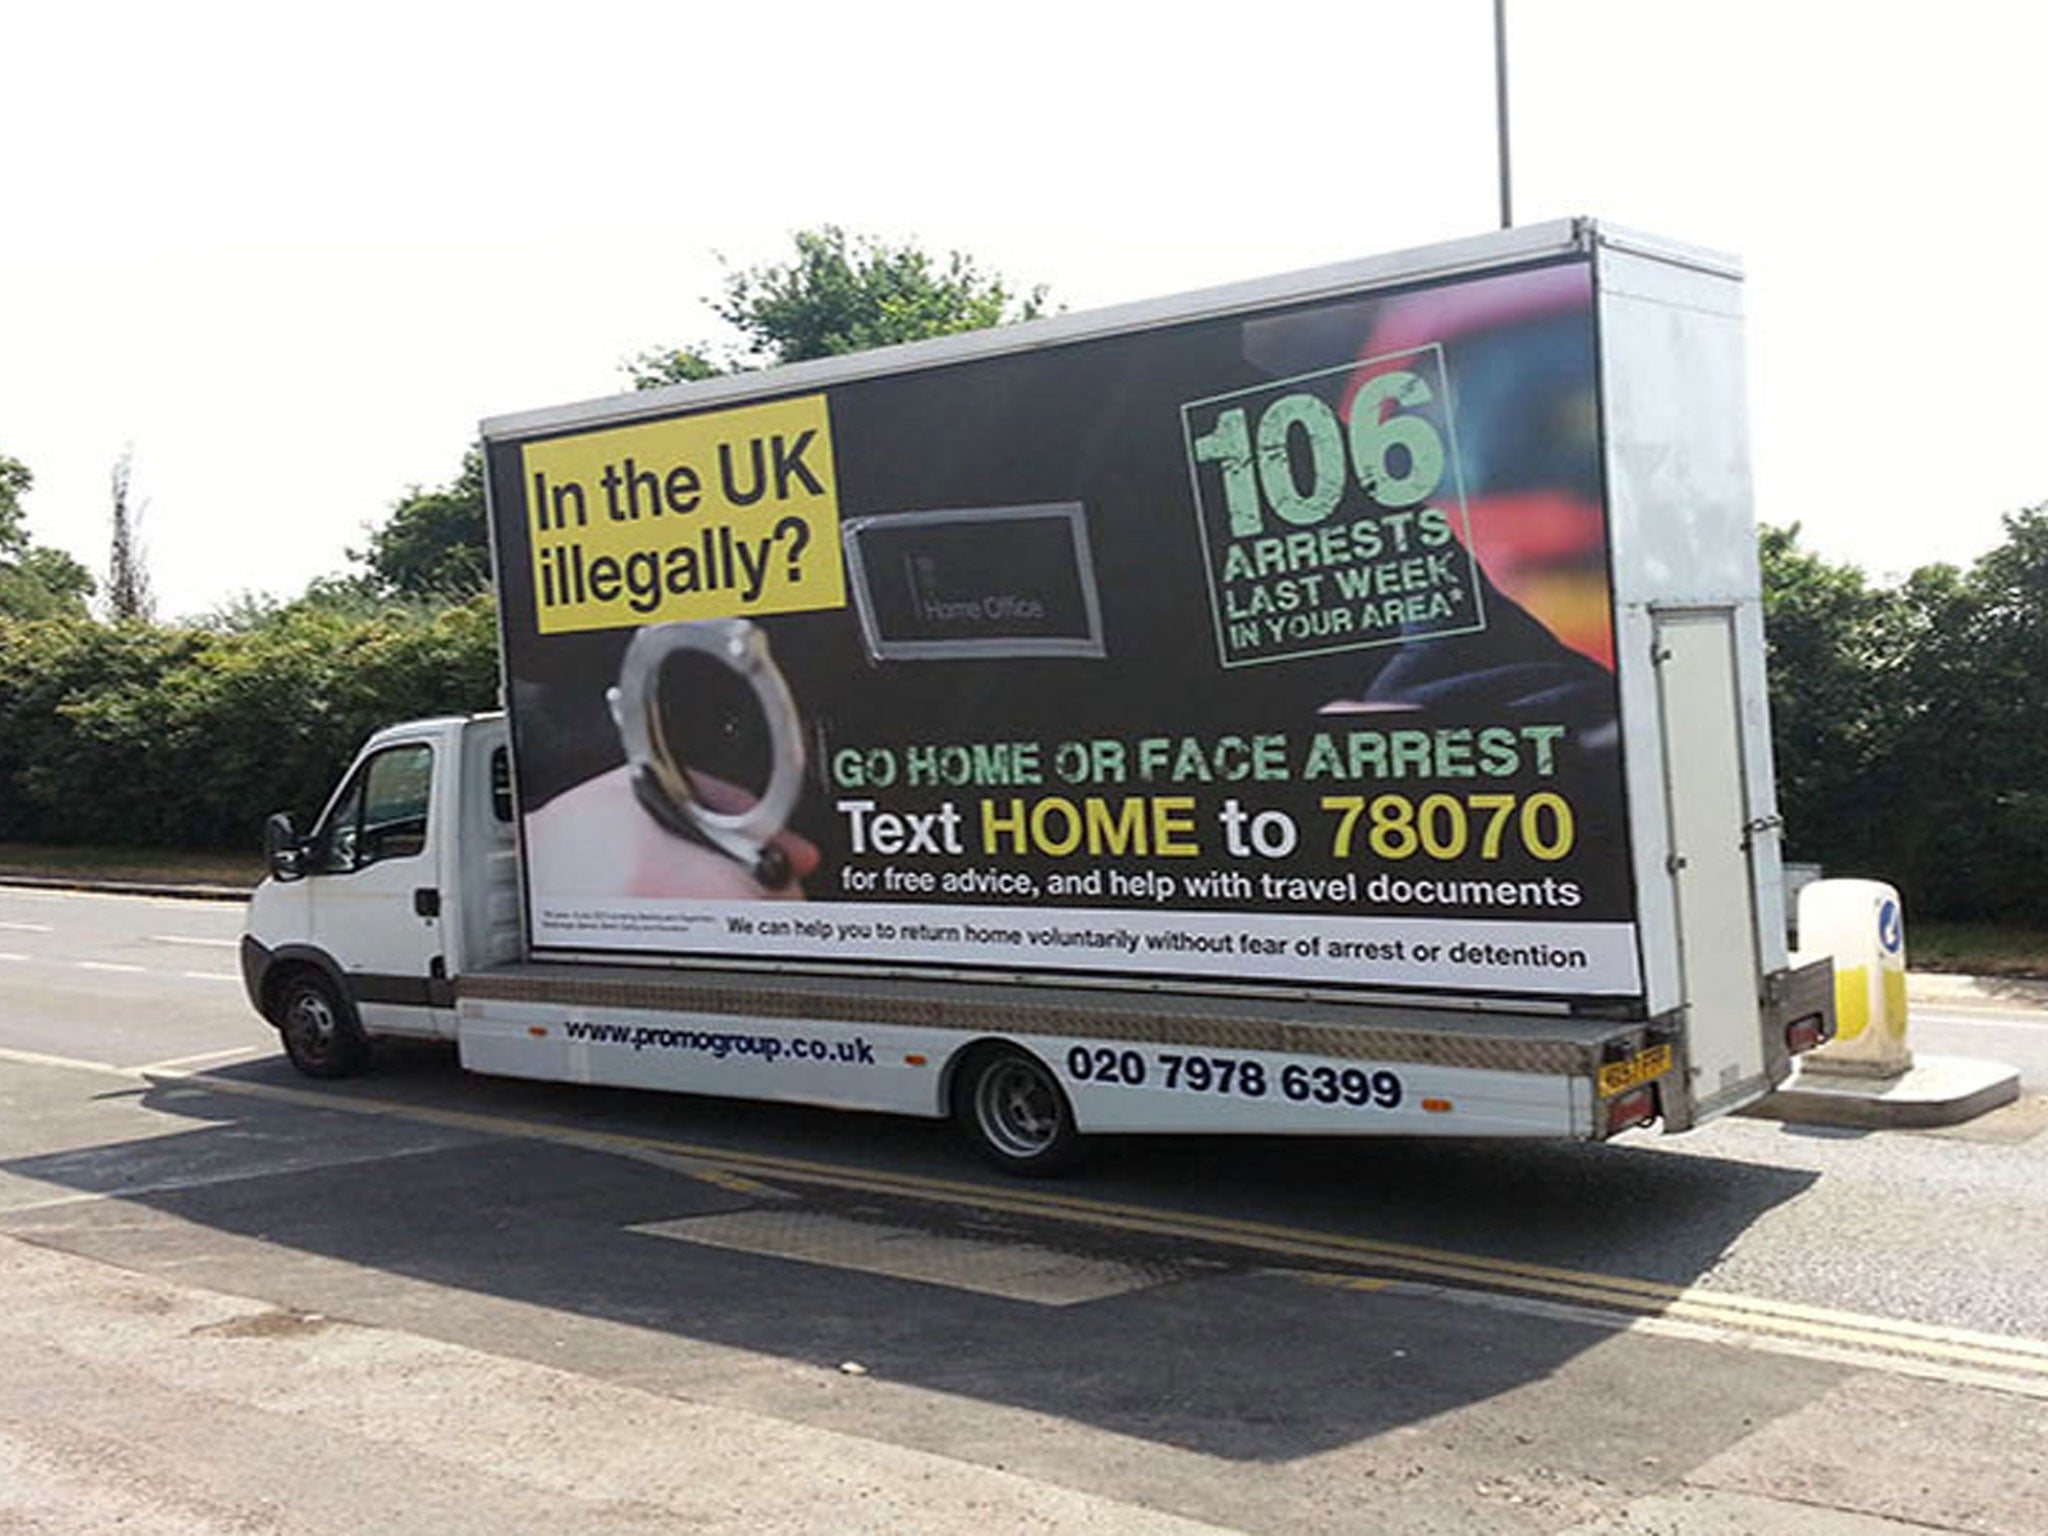 Theresa May has finally decided telling people to 'go home' is unacceptable. Is irony officially dead?